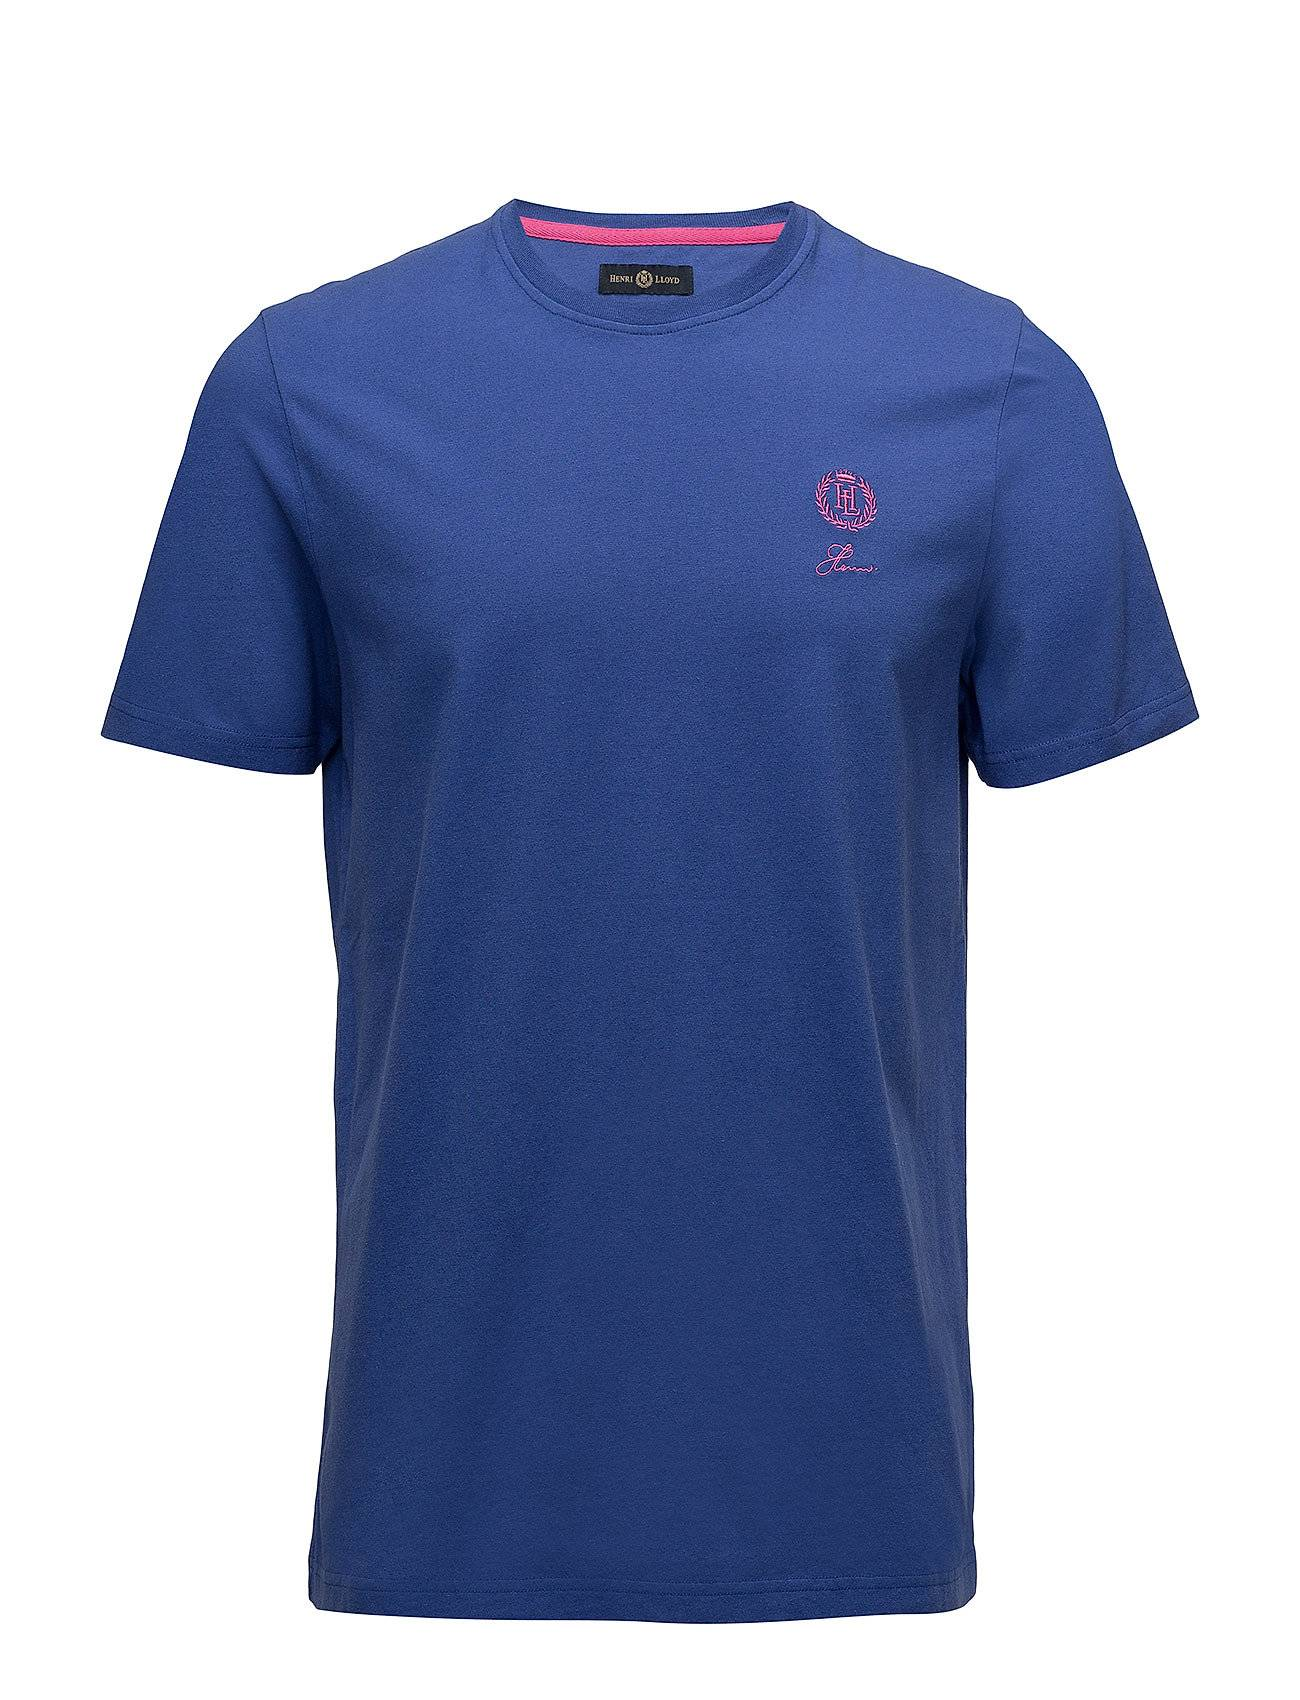 Henri Lloyd Ogmore Regular Tee